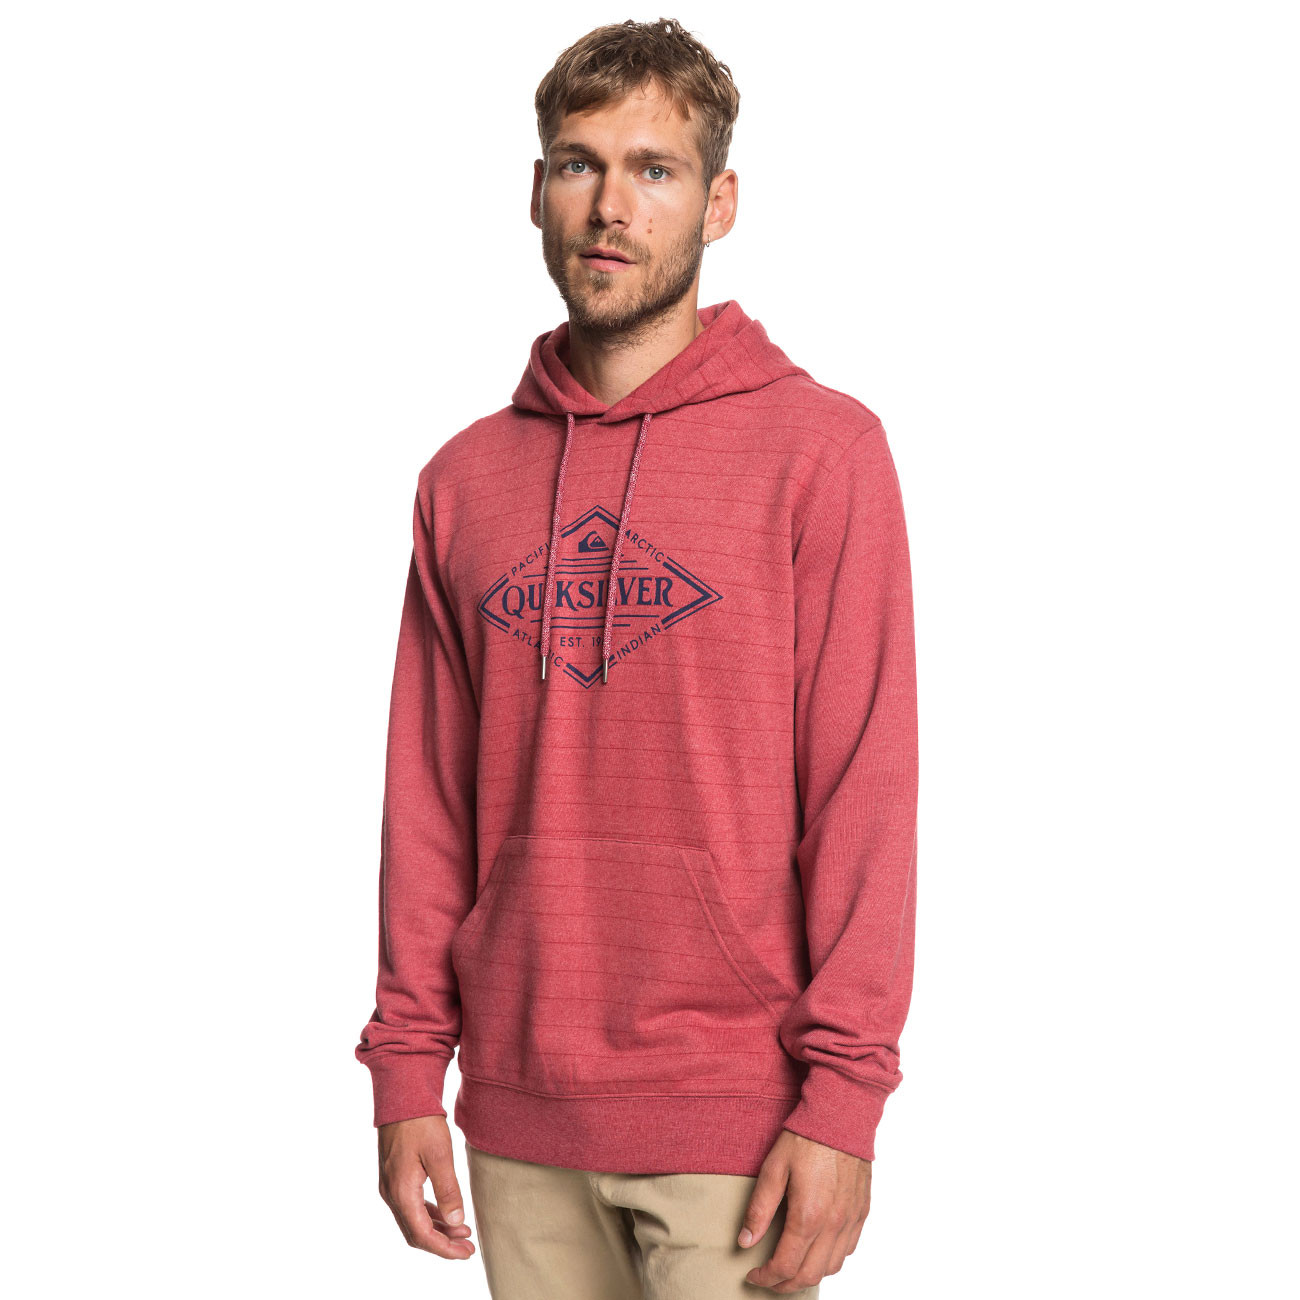 0bf4f15d2c Mikina Quiksilver X Elite brick red screen hoodie stripe